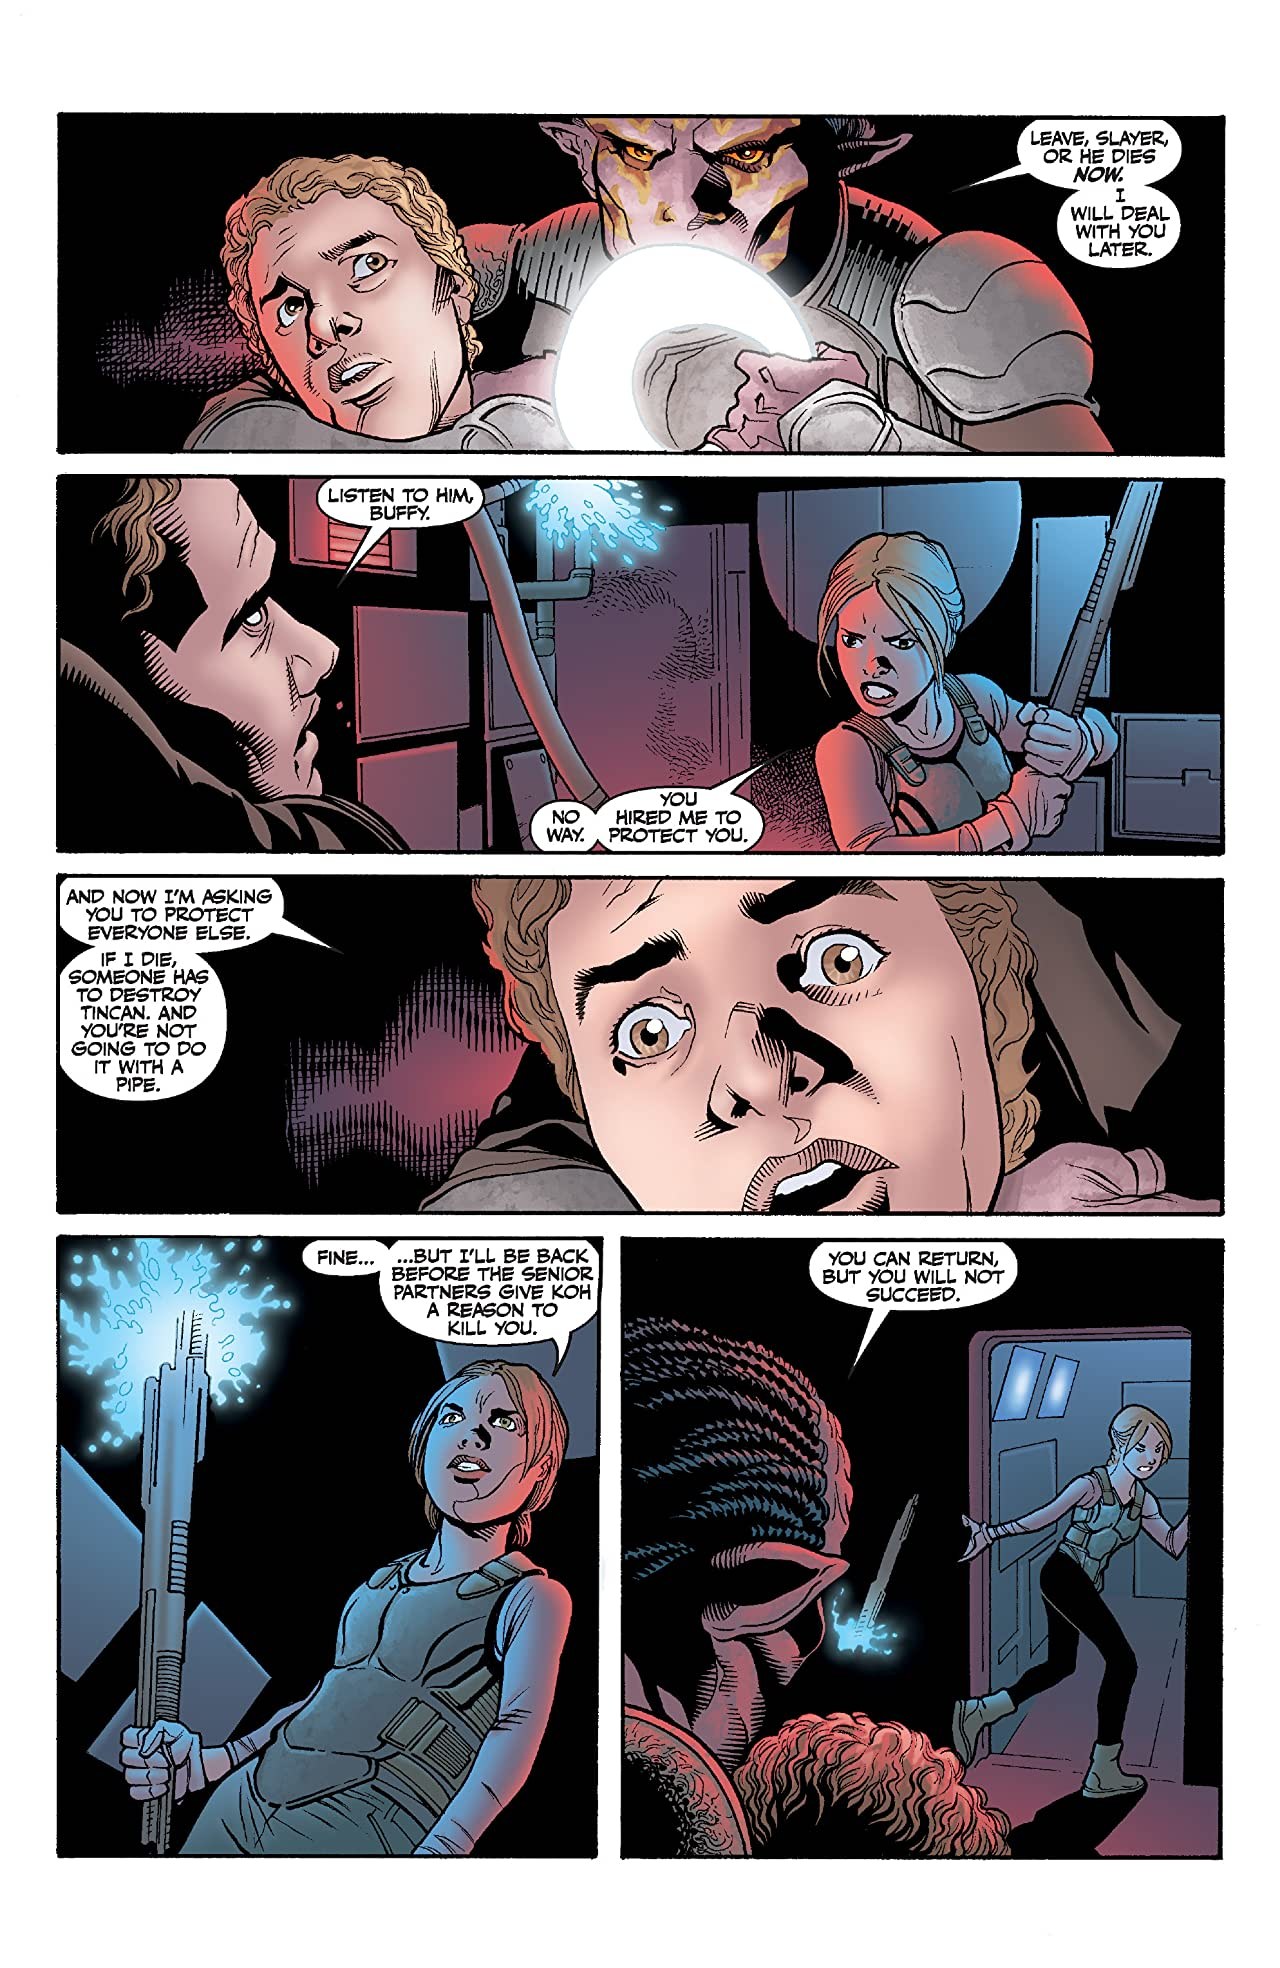 Buffy the Vampire Slayer: Season 9 #13